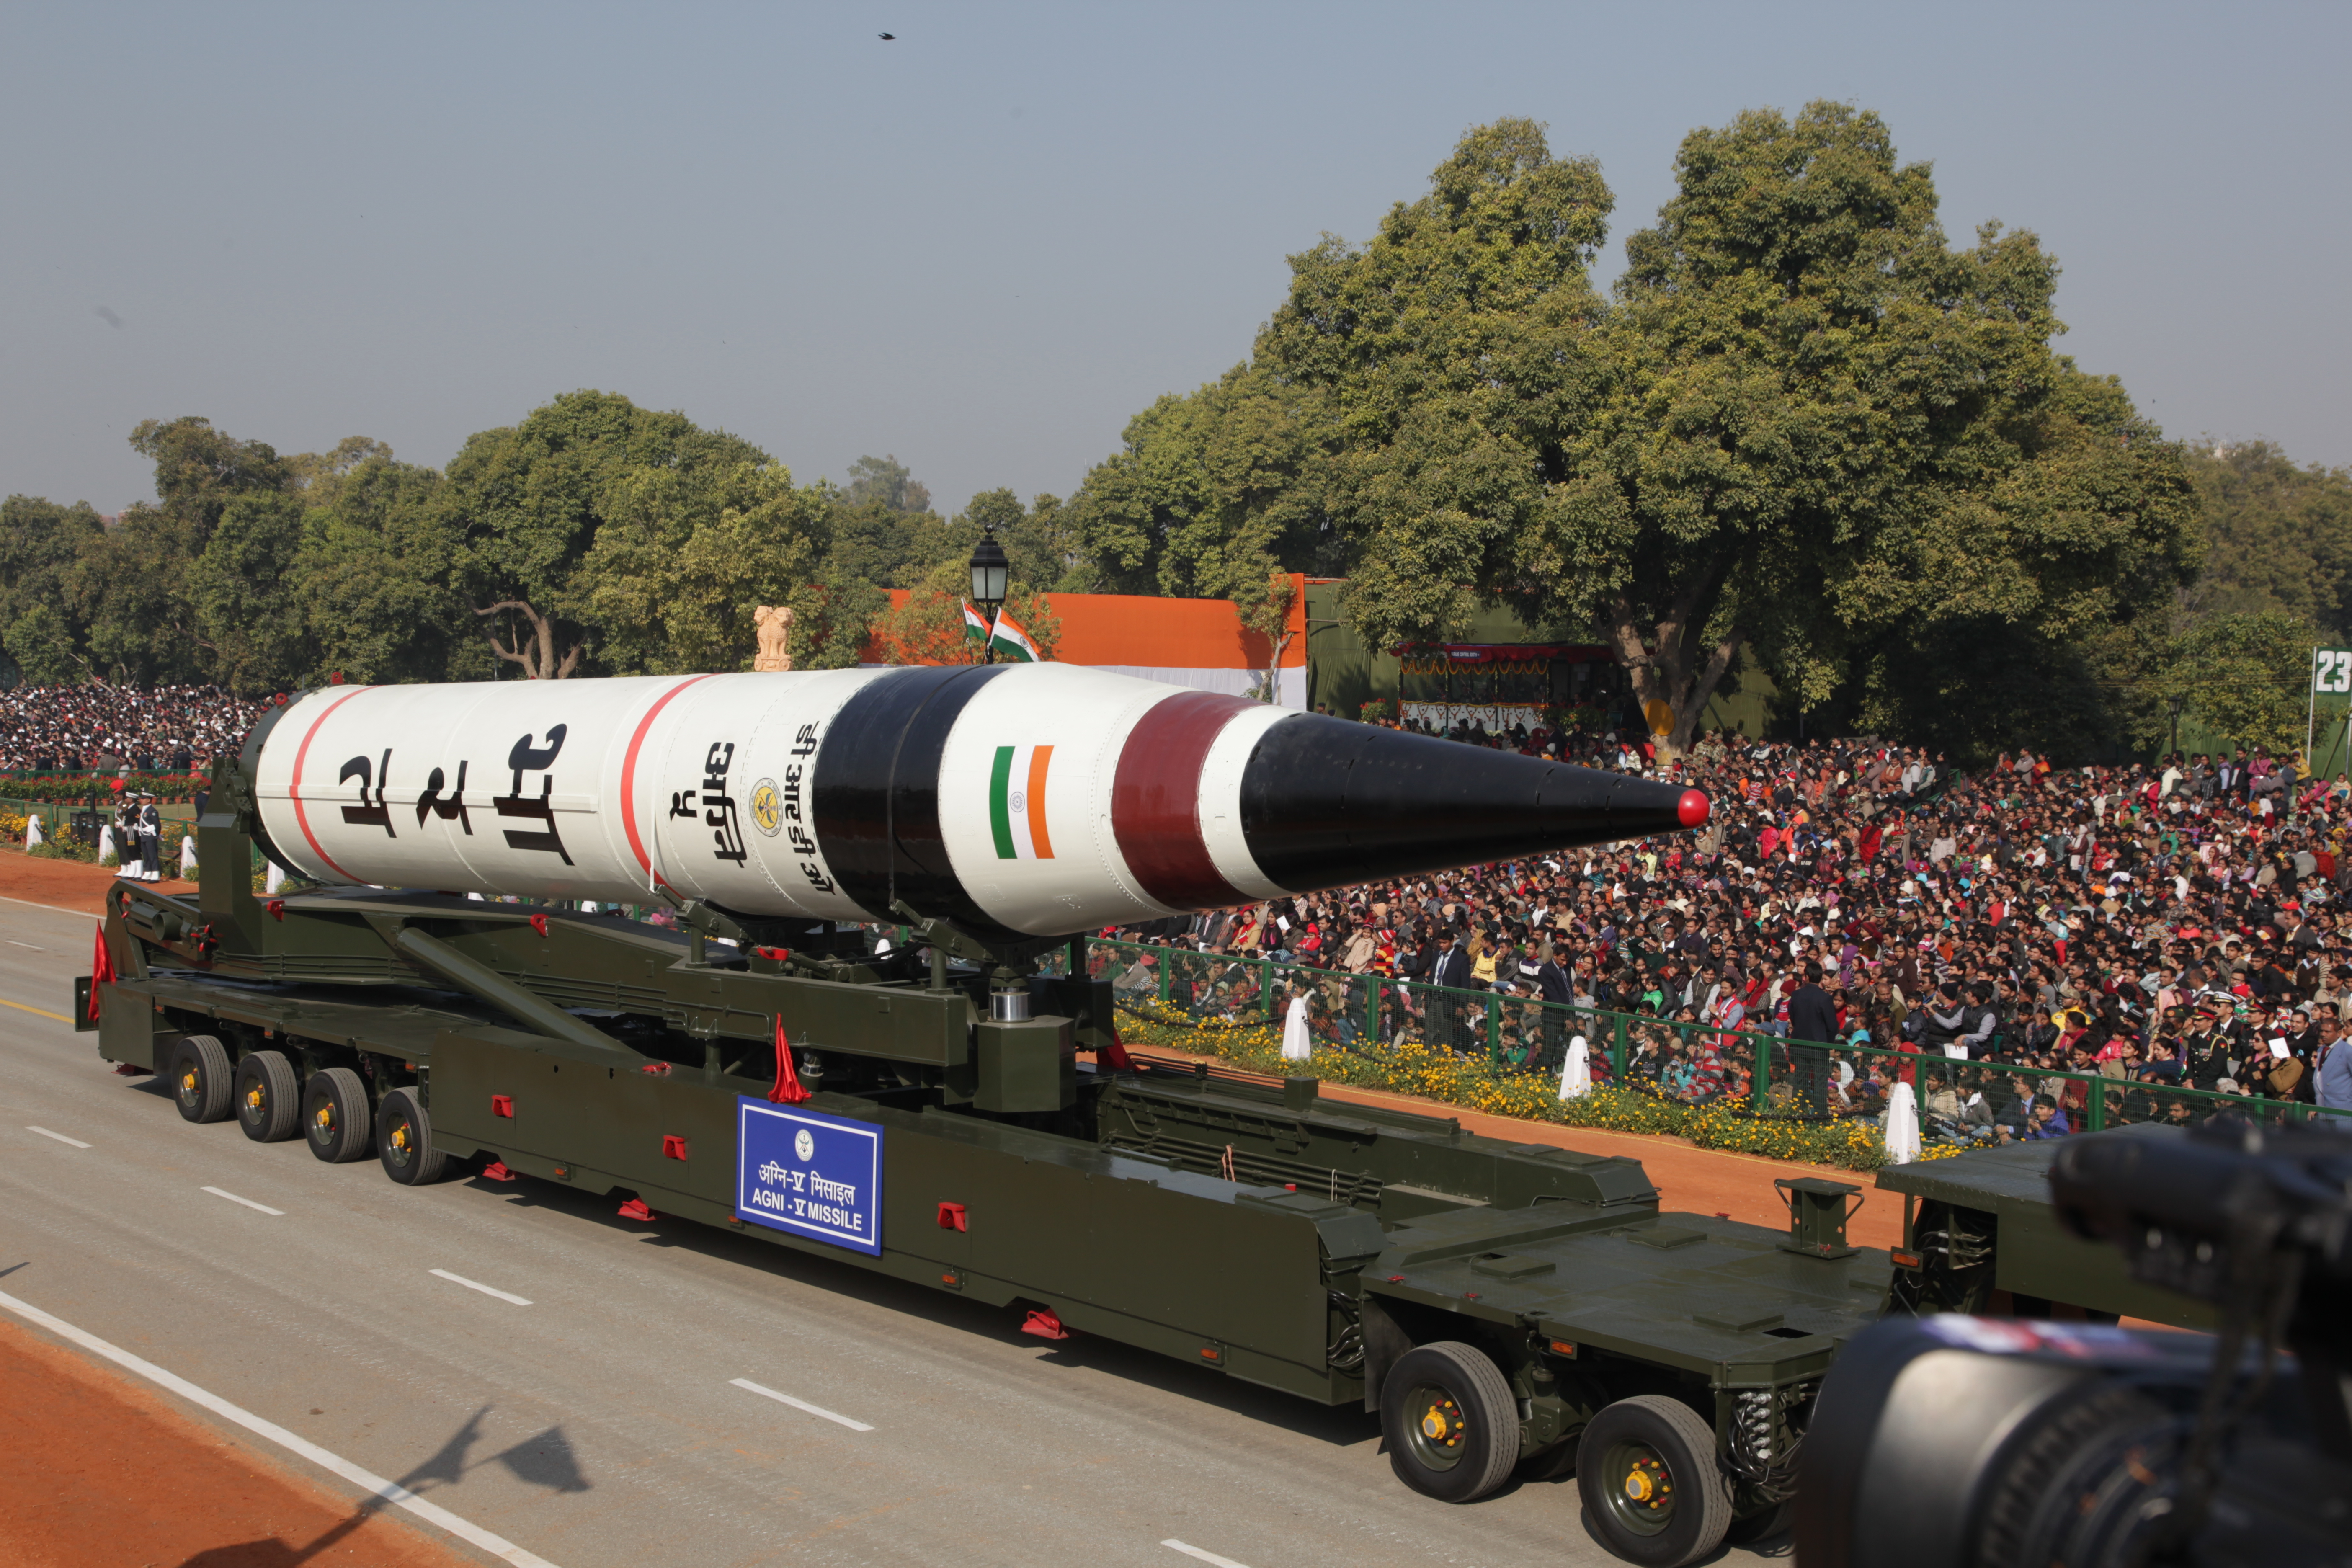 India's long range Agni-5 ballistic missile, seen as part of a 65th Republic Day parade in New Delhi on Jan. 26, 2013.